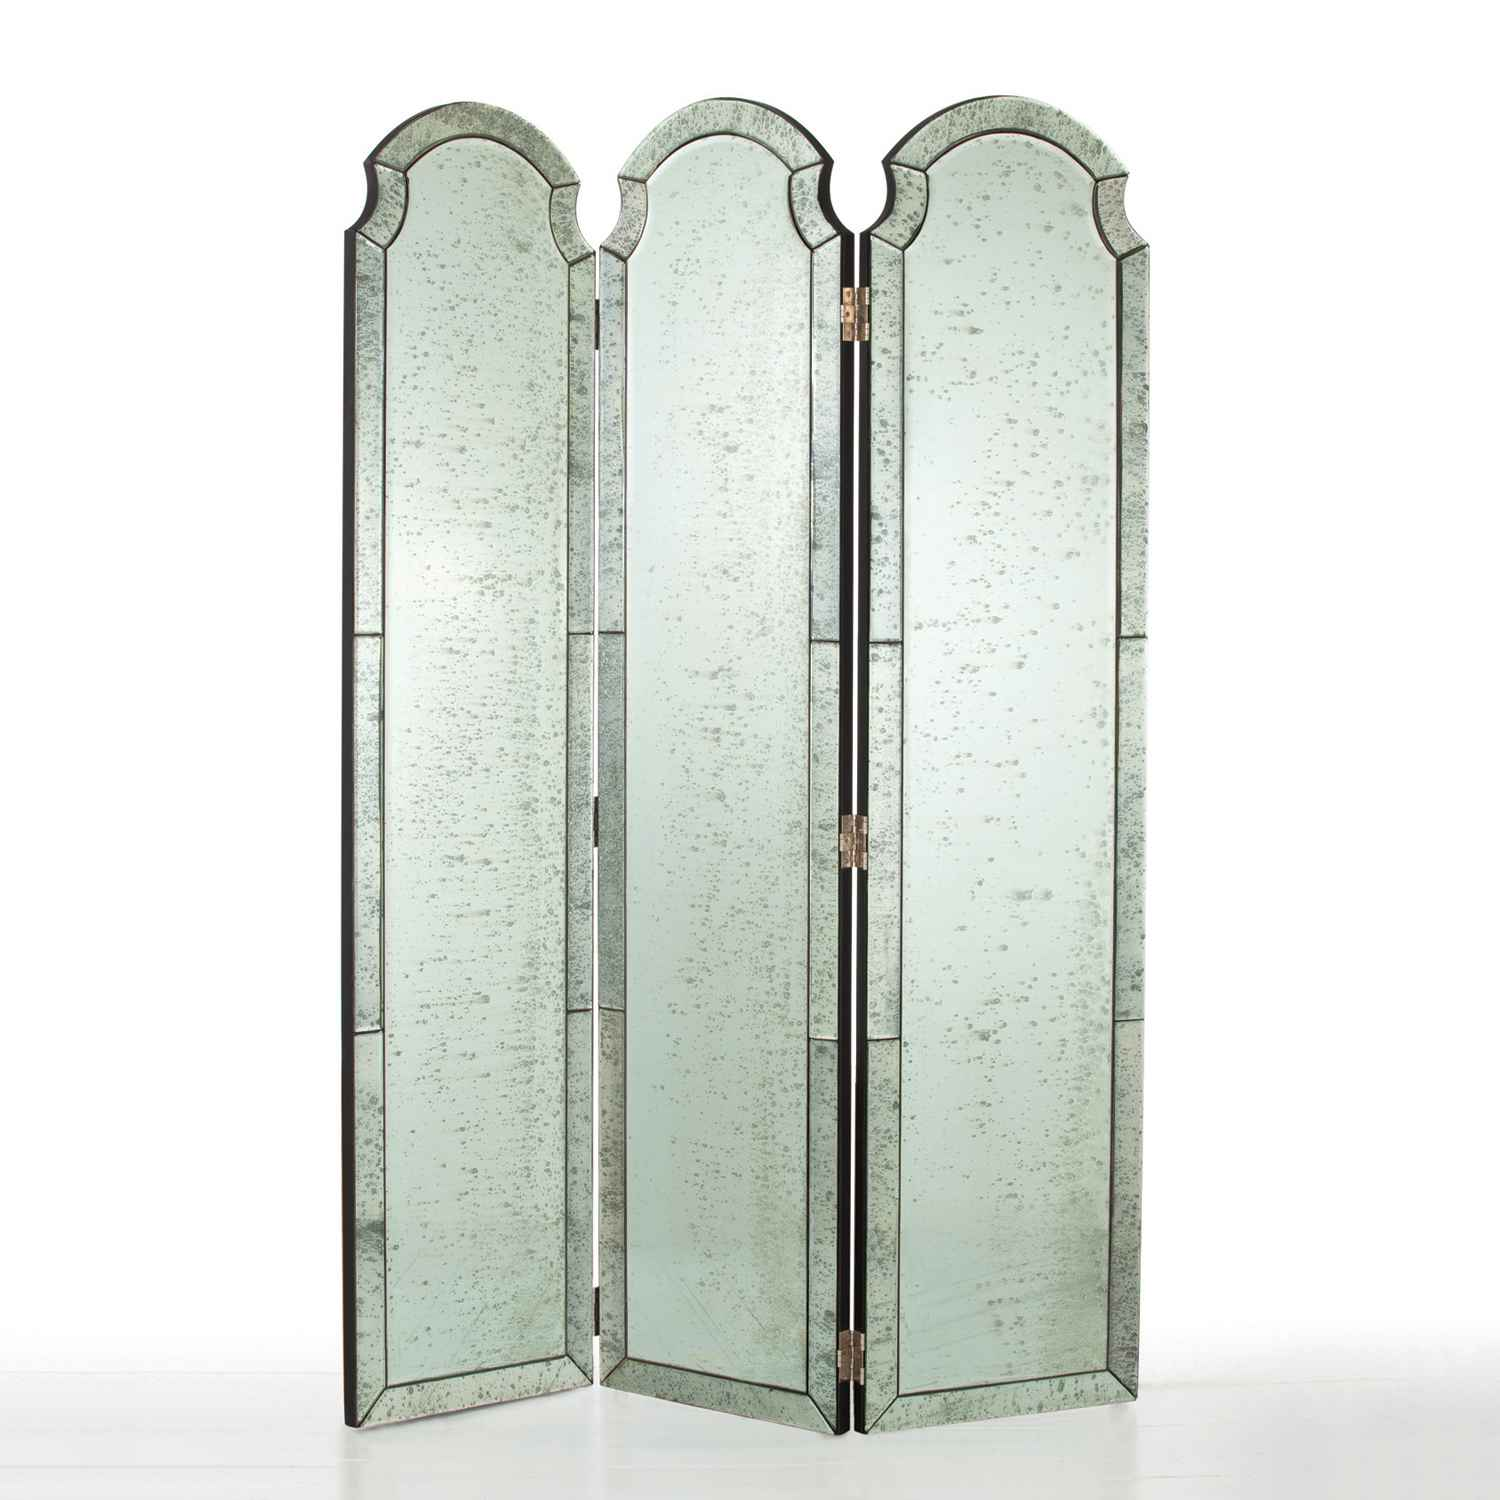 Room Divider Screens Decorative Room Divider Screens Feel The Home